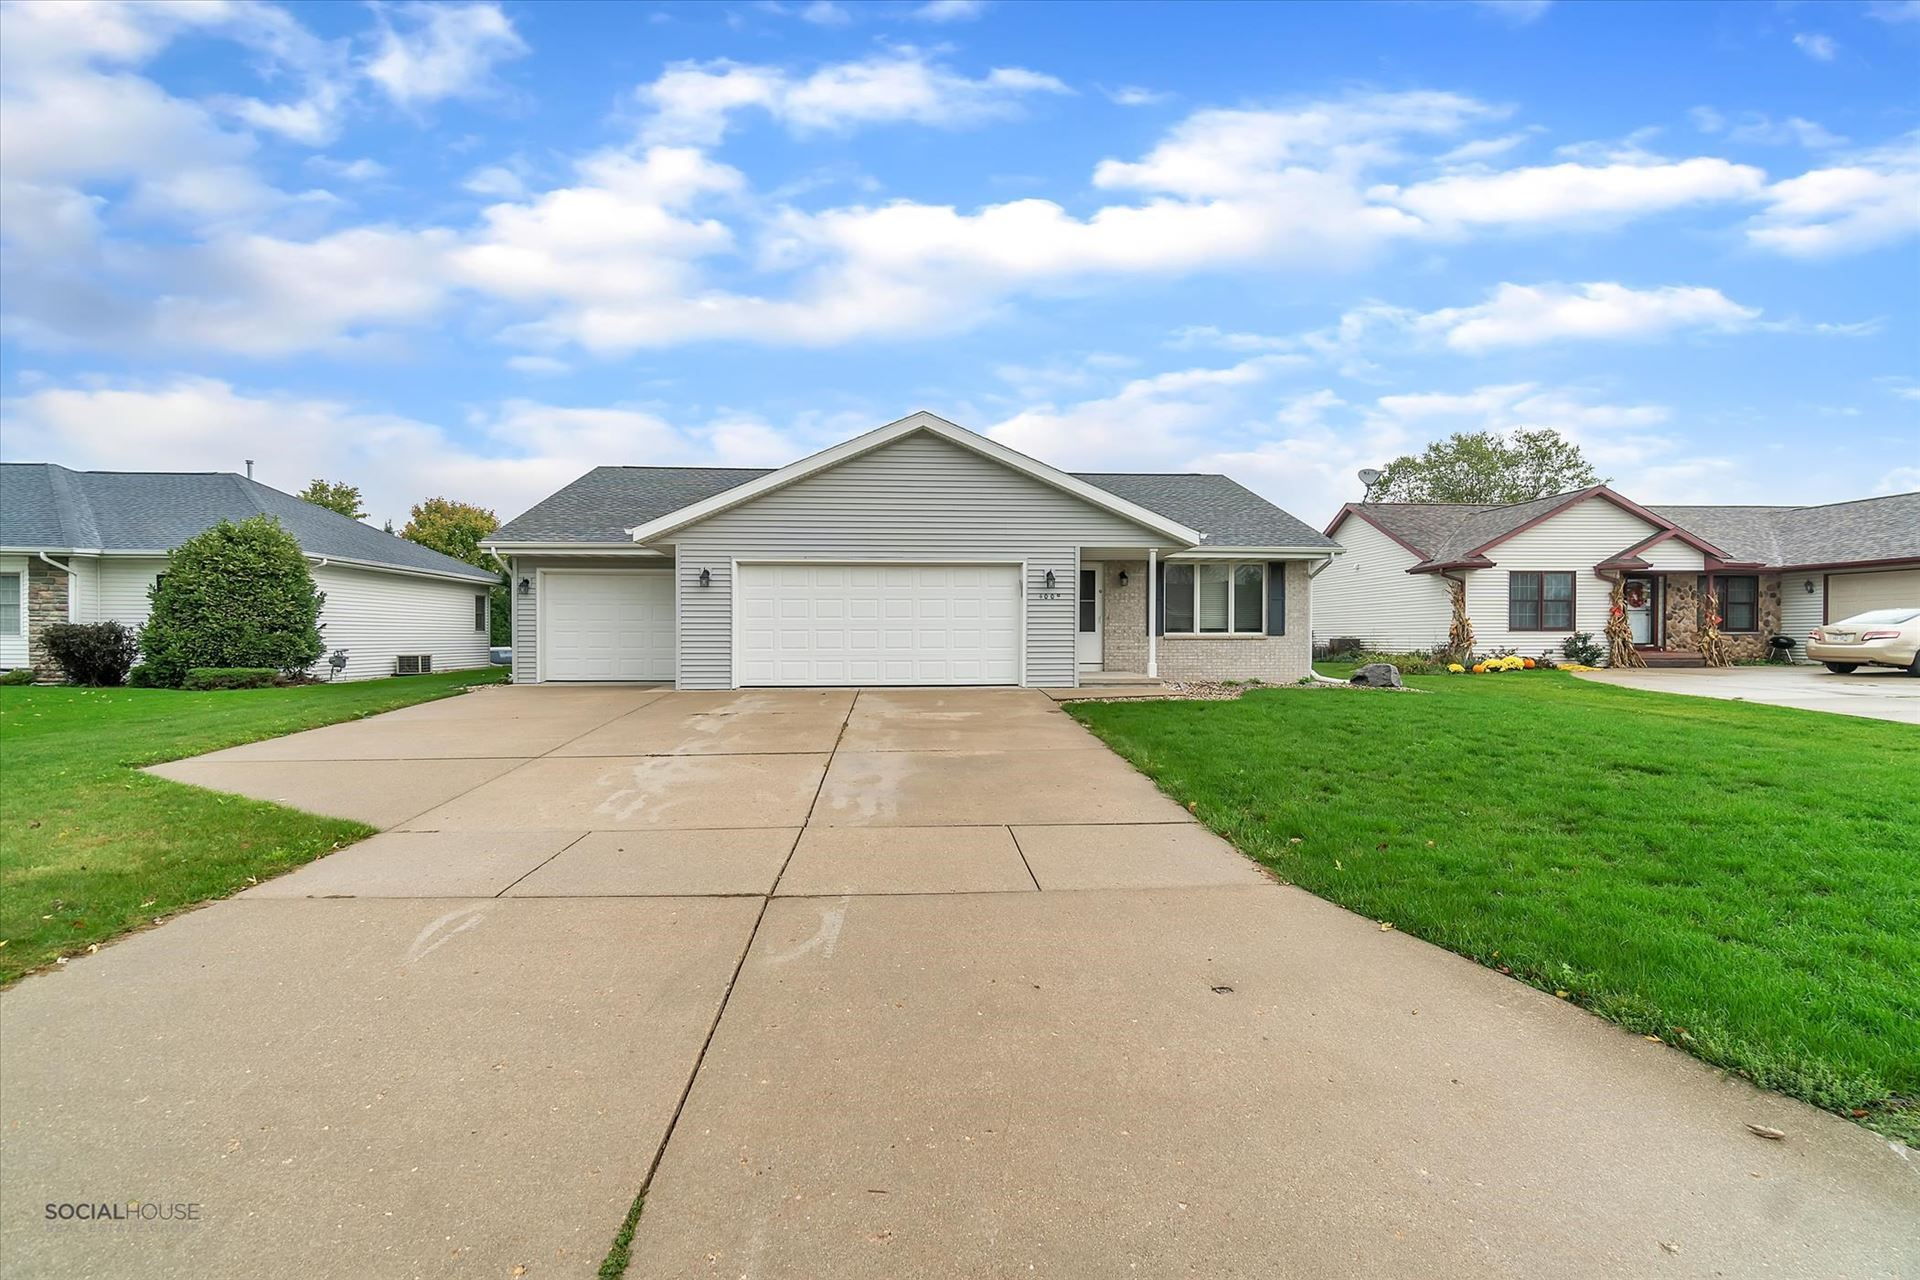 4009 Curry Ln, Janesville, WI 53546 - #: 1921648